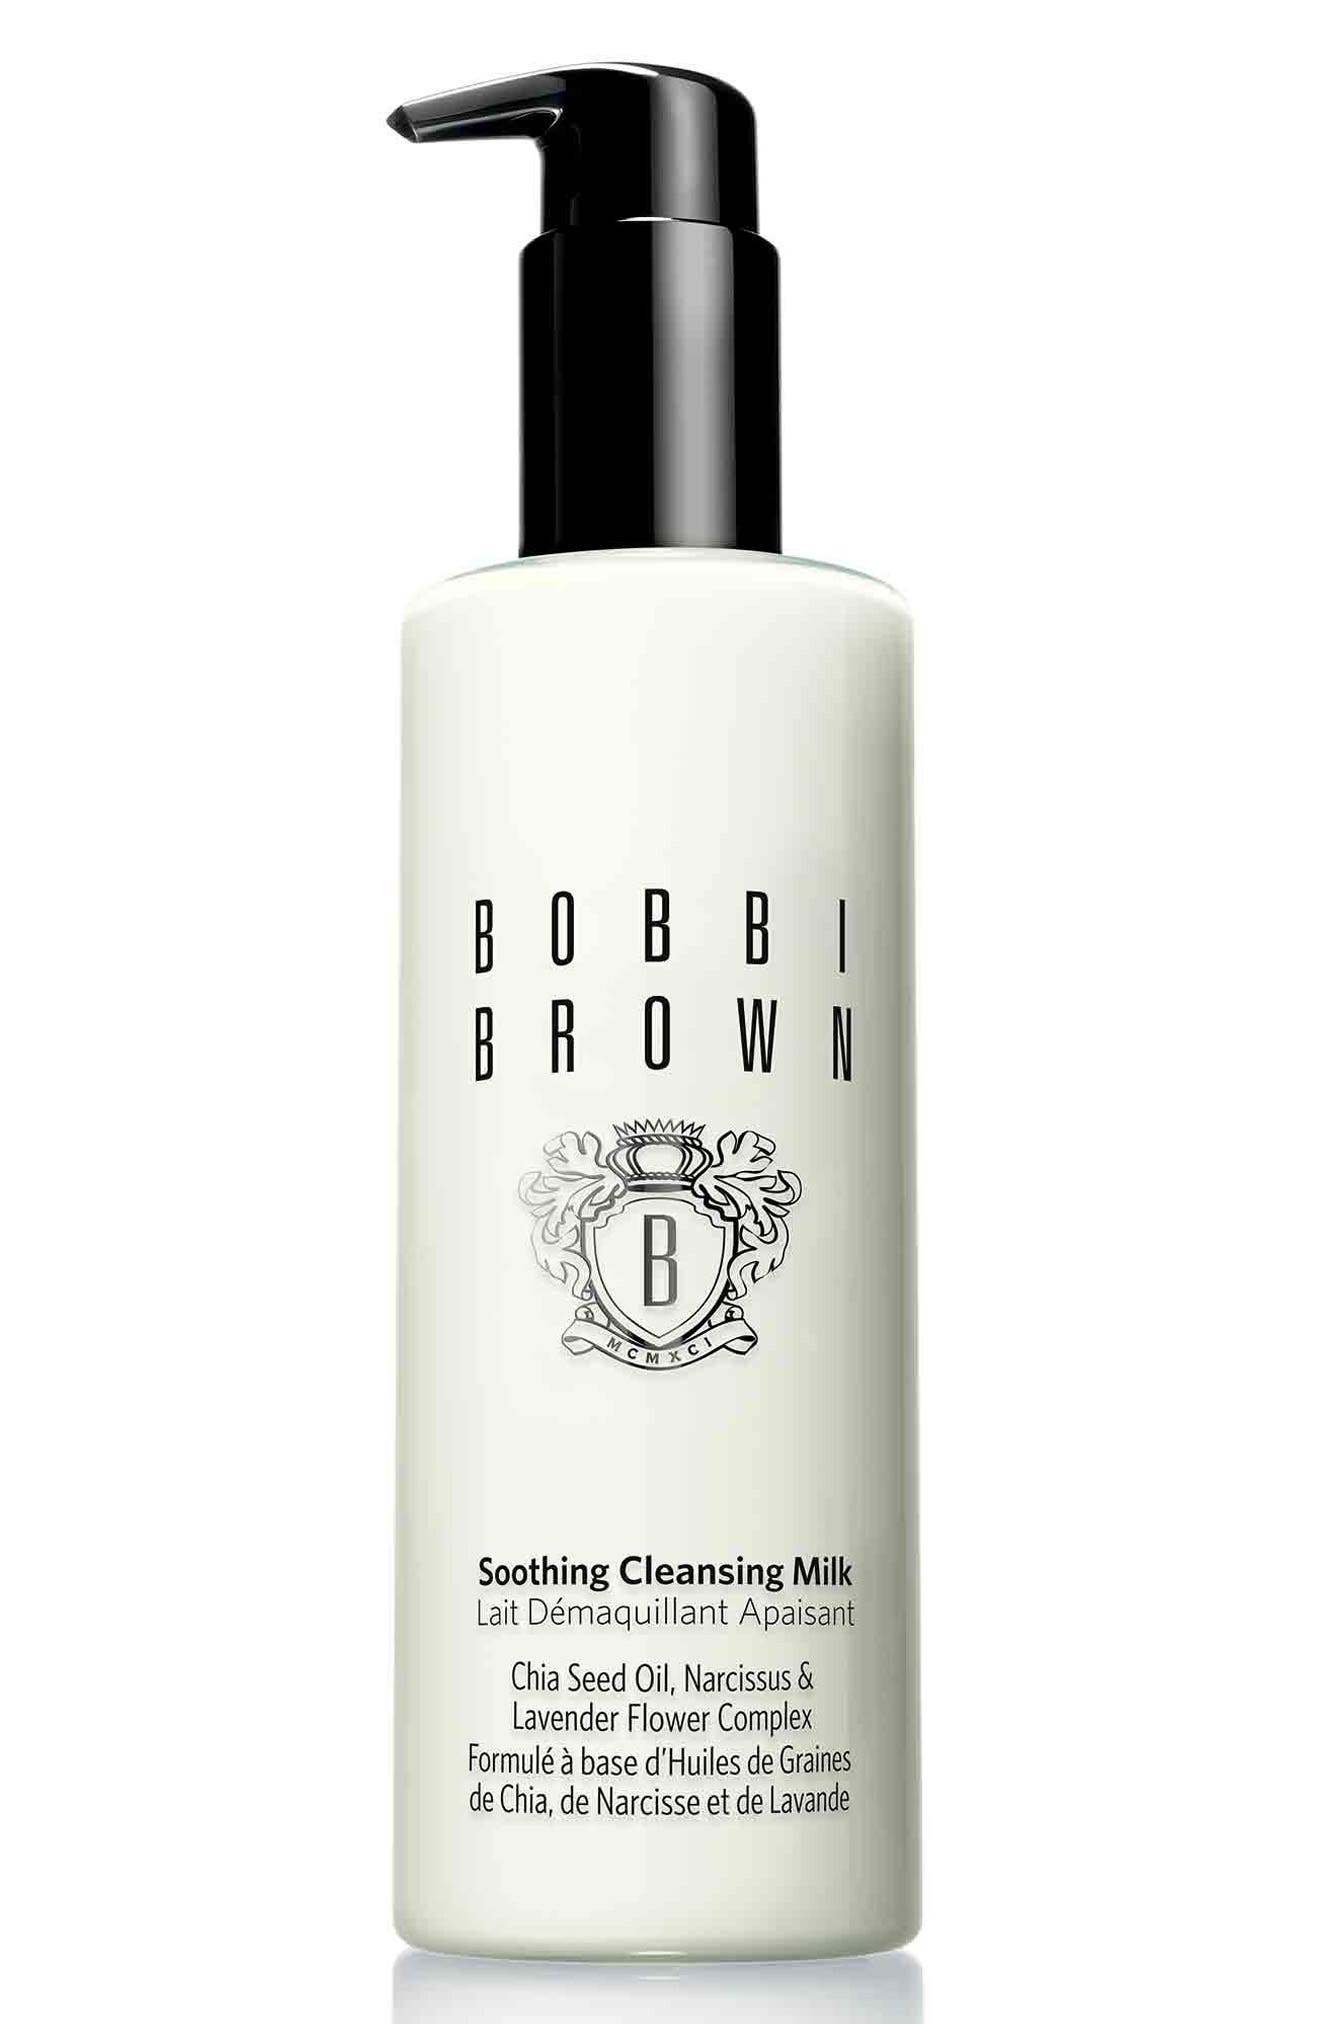 BOBBI BROWN Soothing Cleansing Milk